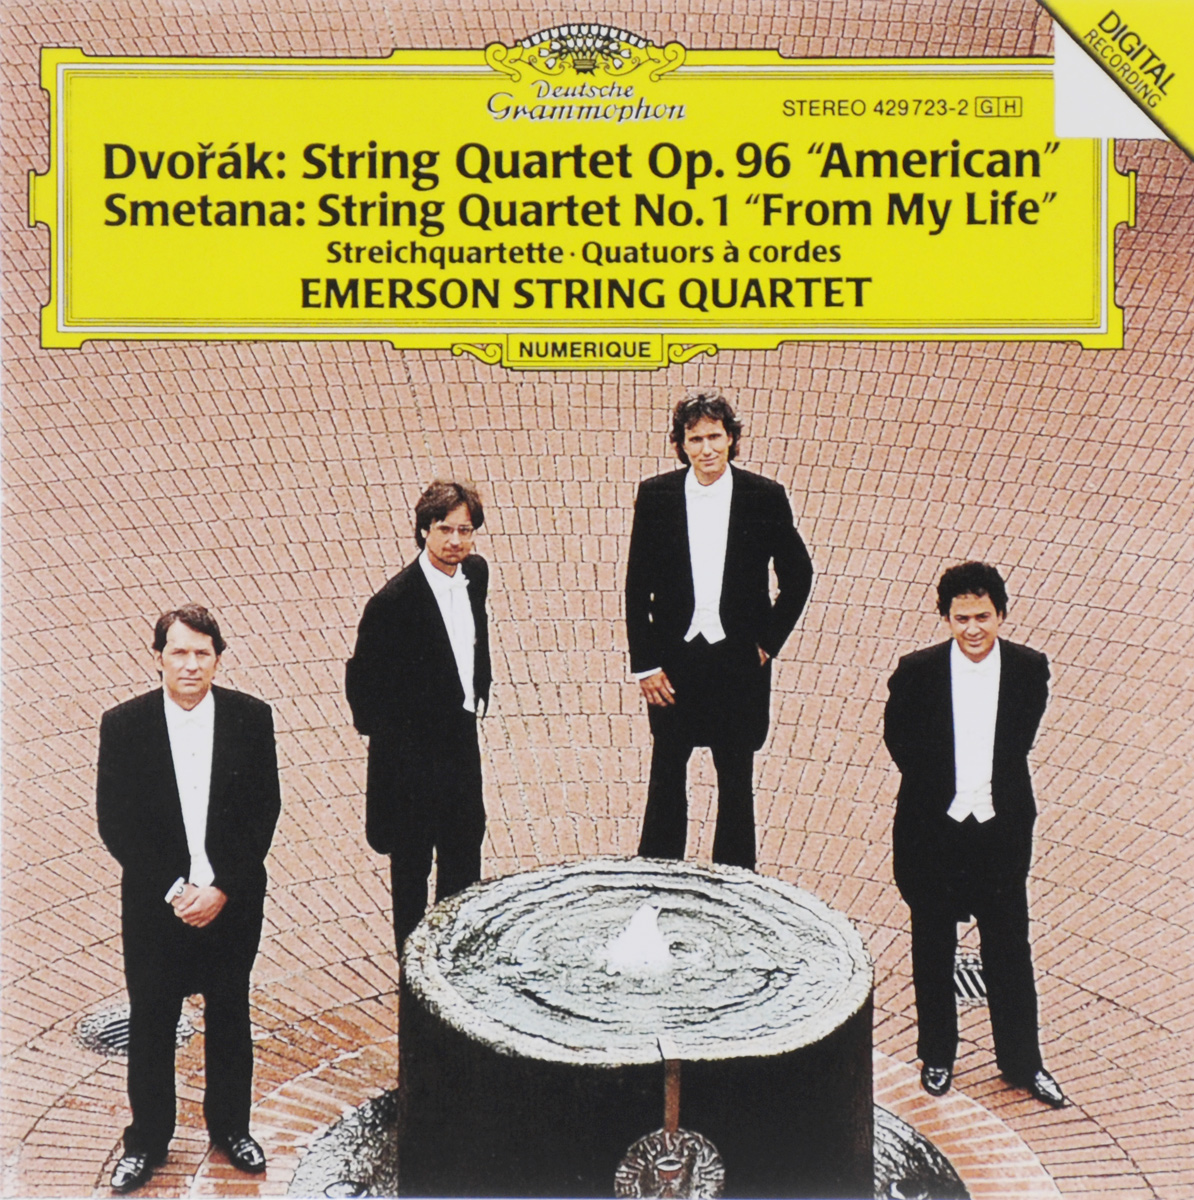 Emerson String Quartet Emerson String Quartet. String Quartet Op. 96 American / String Quartet No. 1 From My Life ящик timberica ящик подкроватный большой